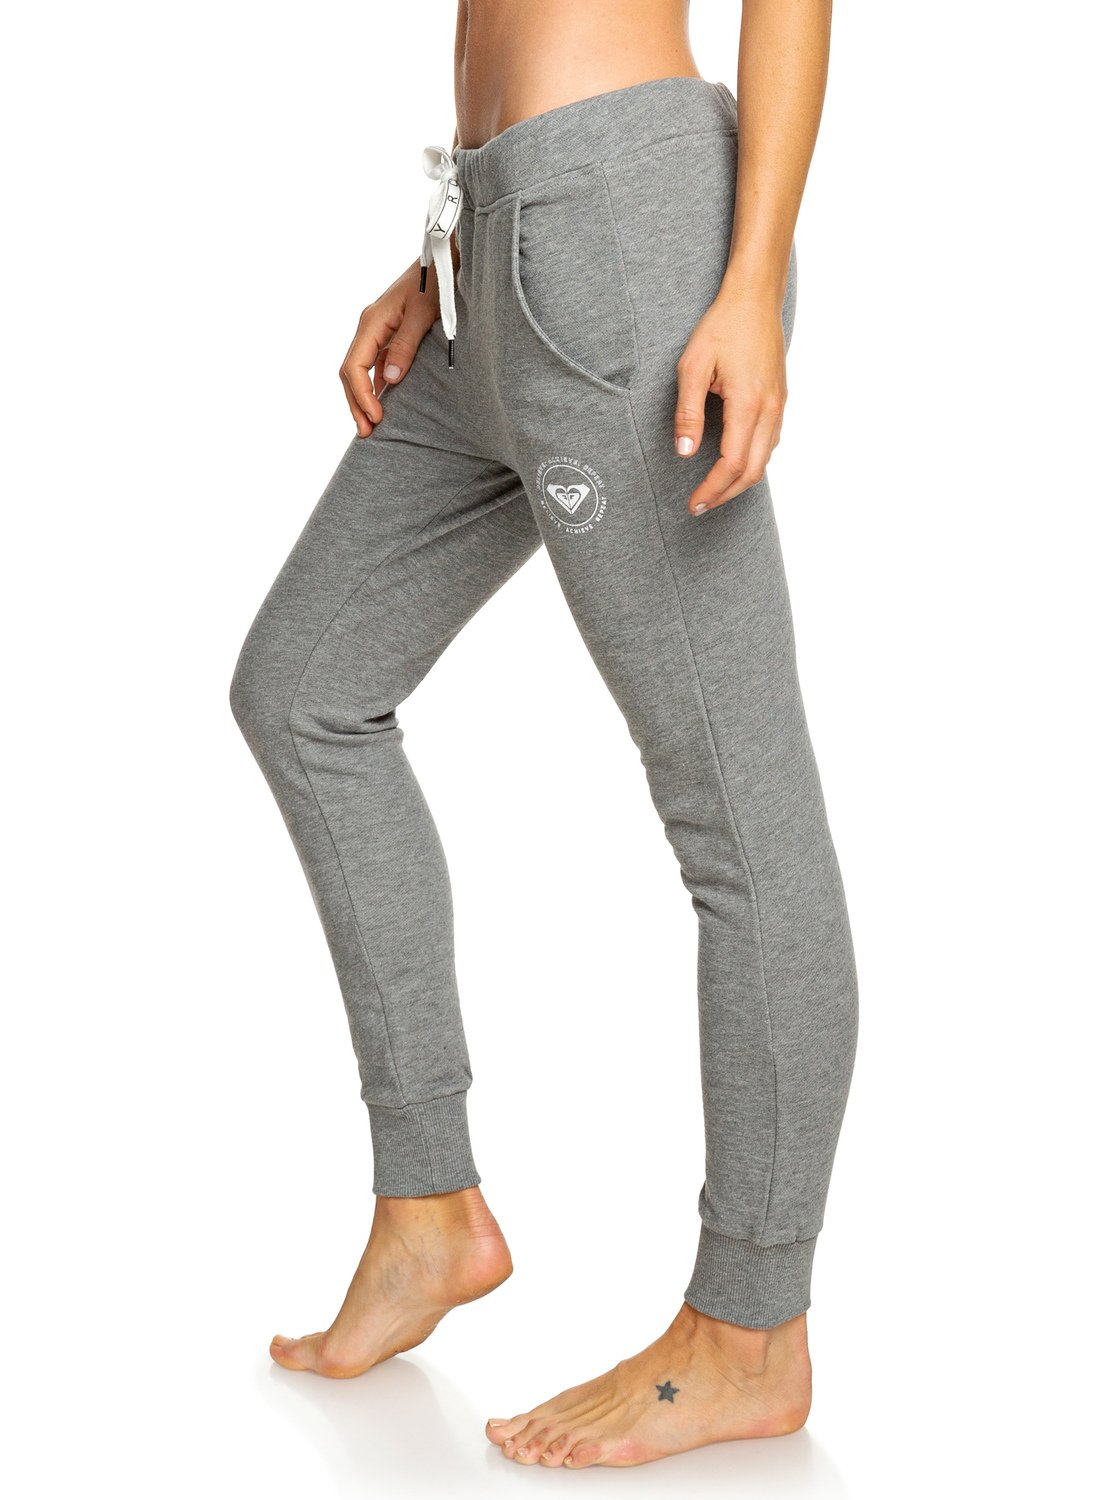 Strakke Joggingbroek Dames.Hello The World Bottom B Joggingbroek Voor Dames Erjfb03178 Roxy